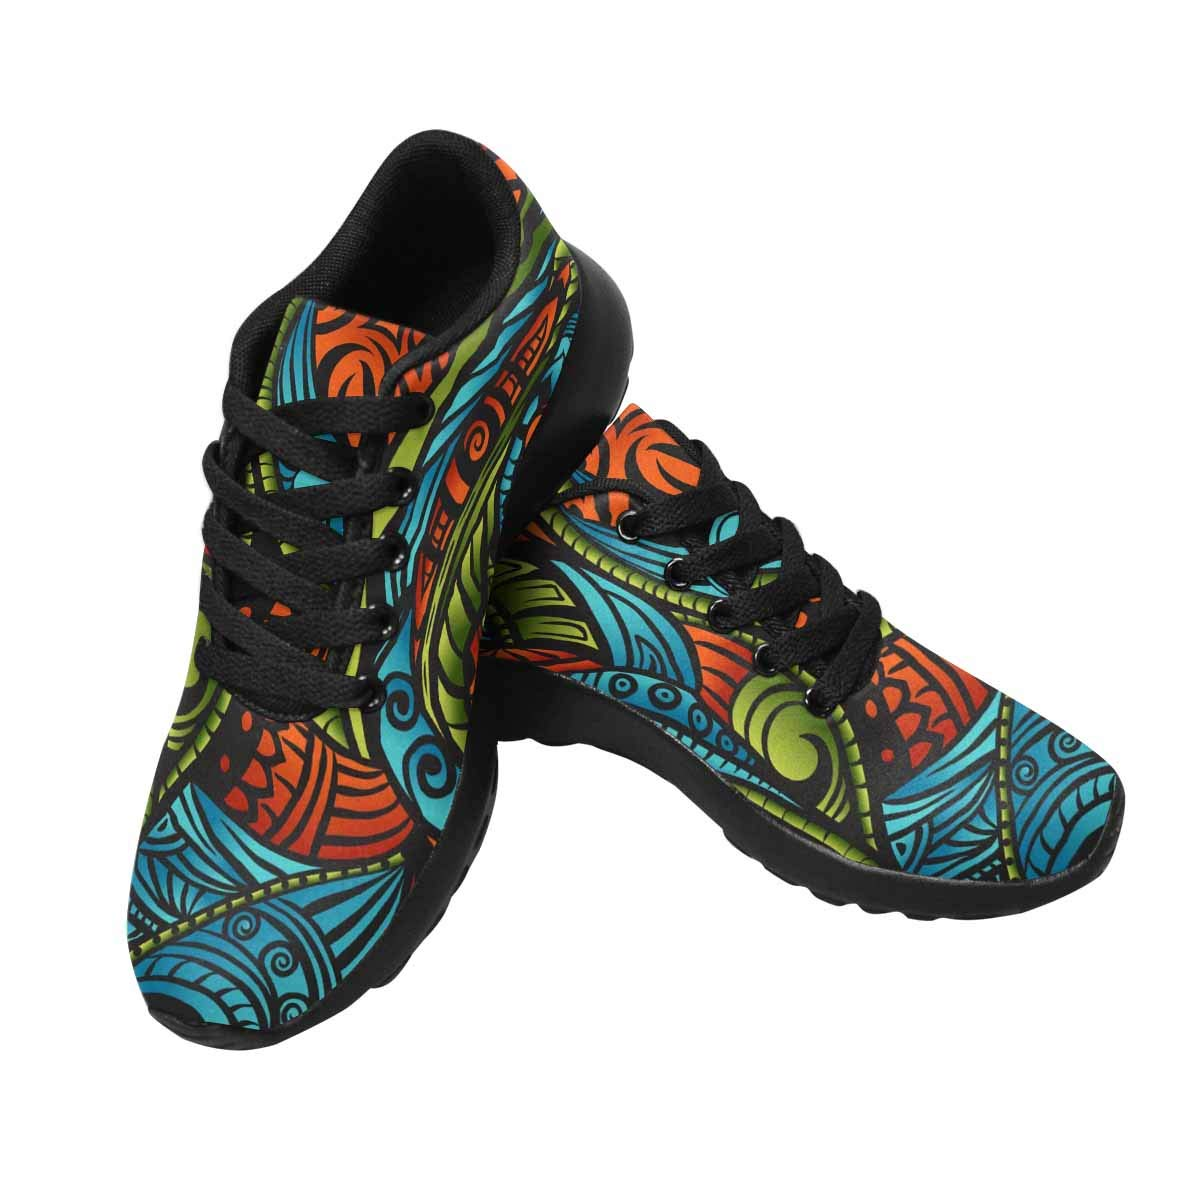 InterestPrint Women's Casual Walking Shoes Sports Running Sneakers Athletic Sneakers US8 Ethnic Style